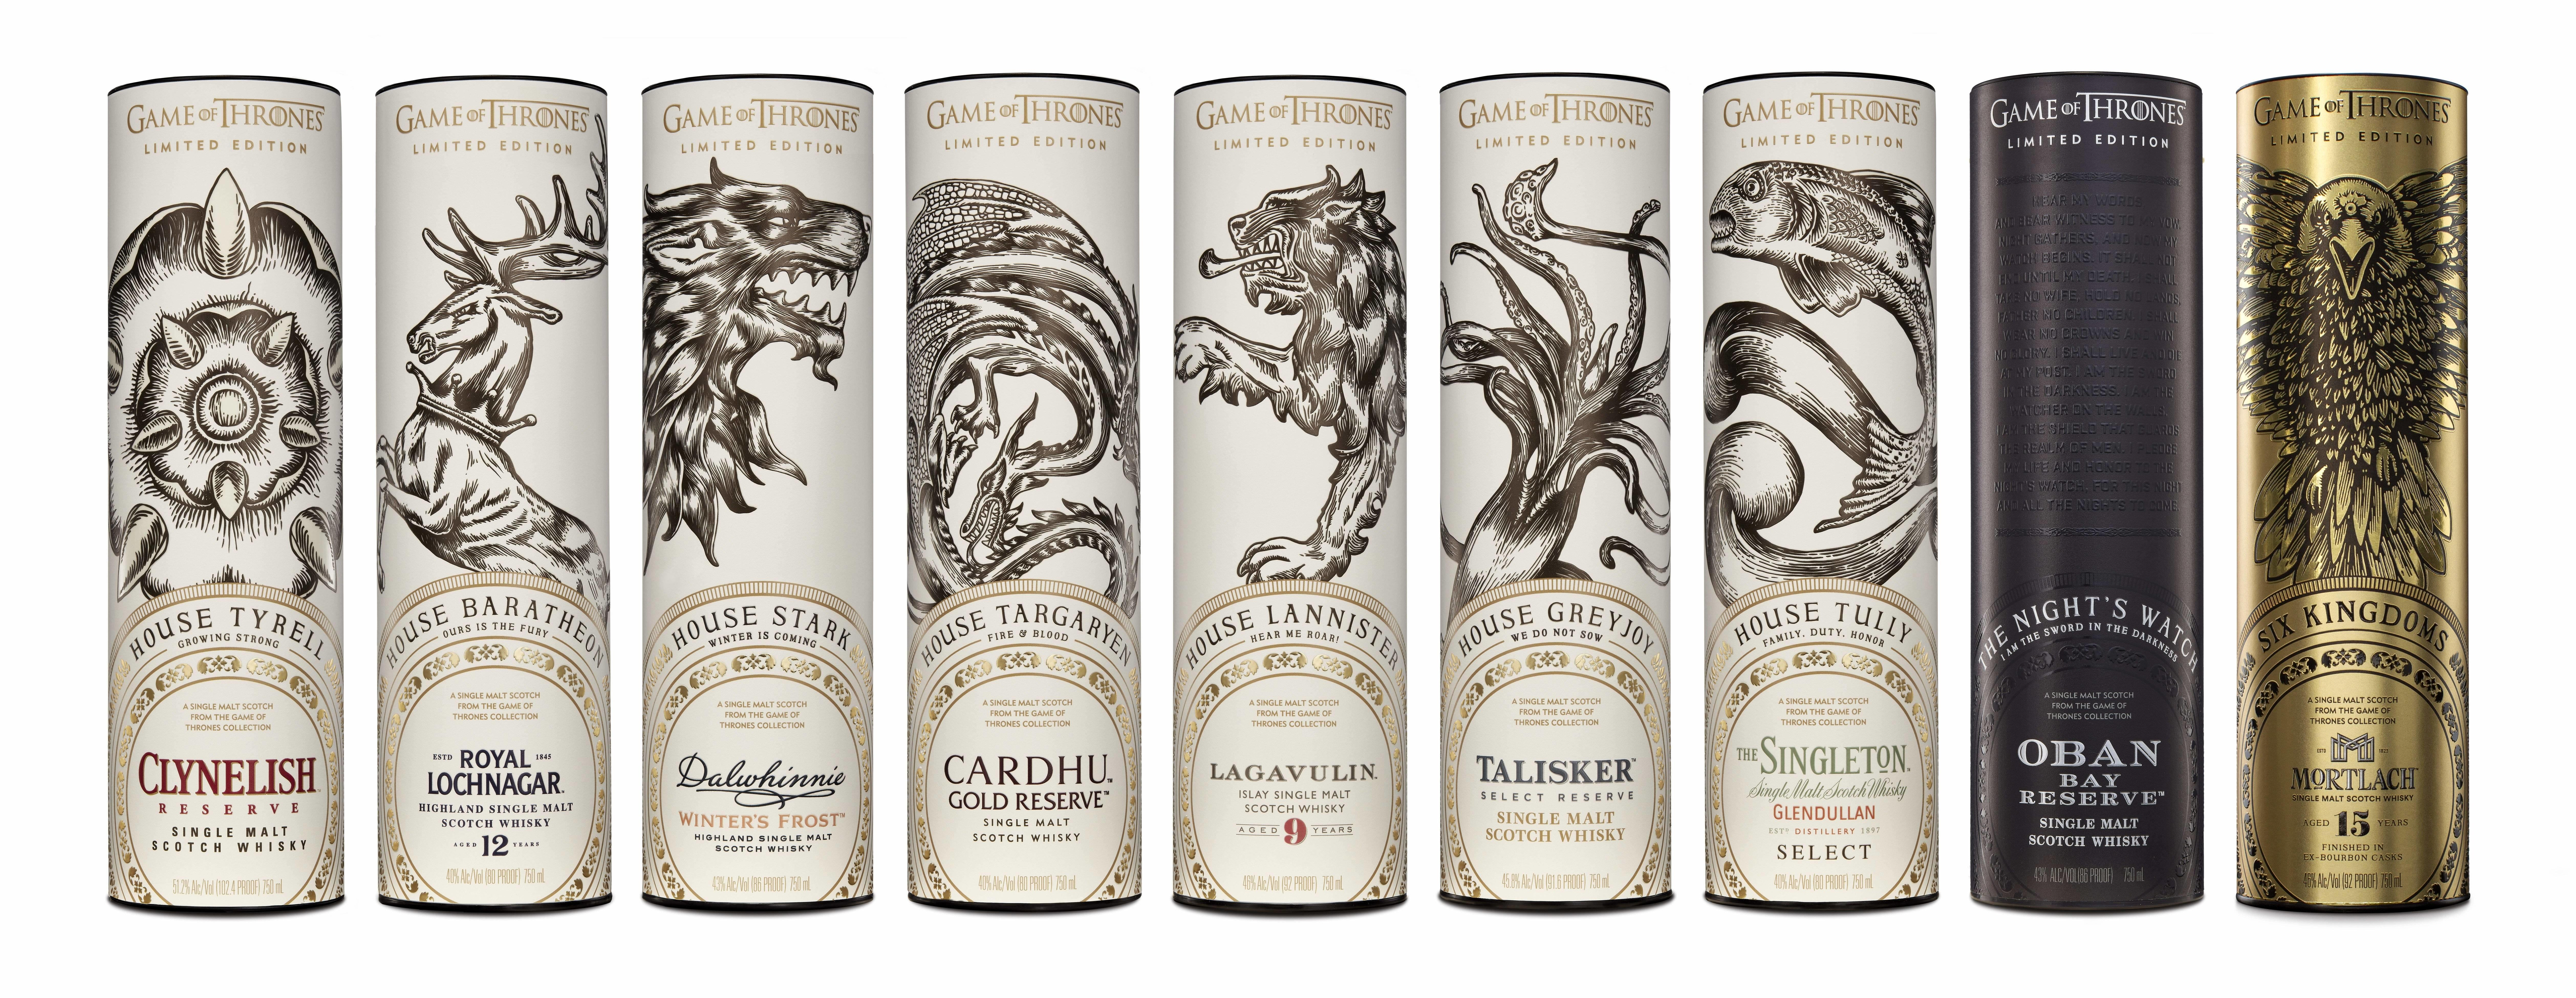 Diageo Has The Ultimate Whisky Collection For Game Of Thrones Fans